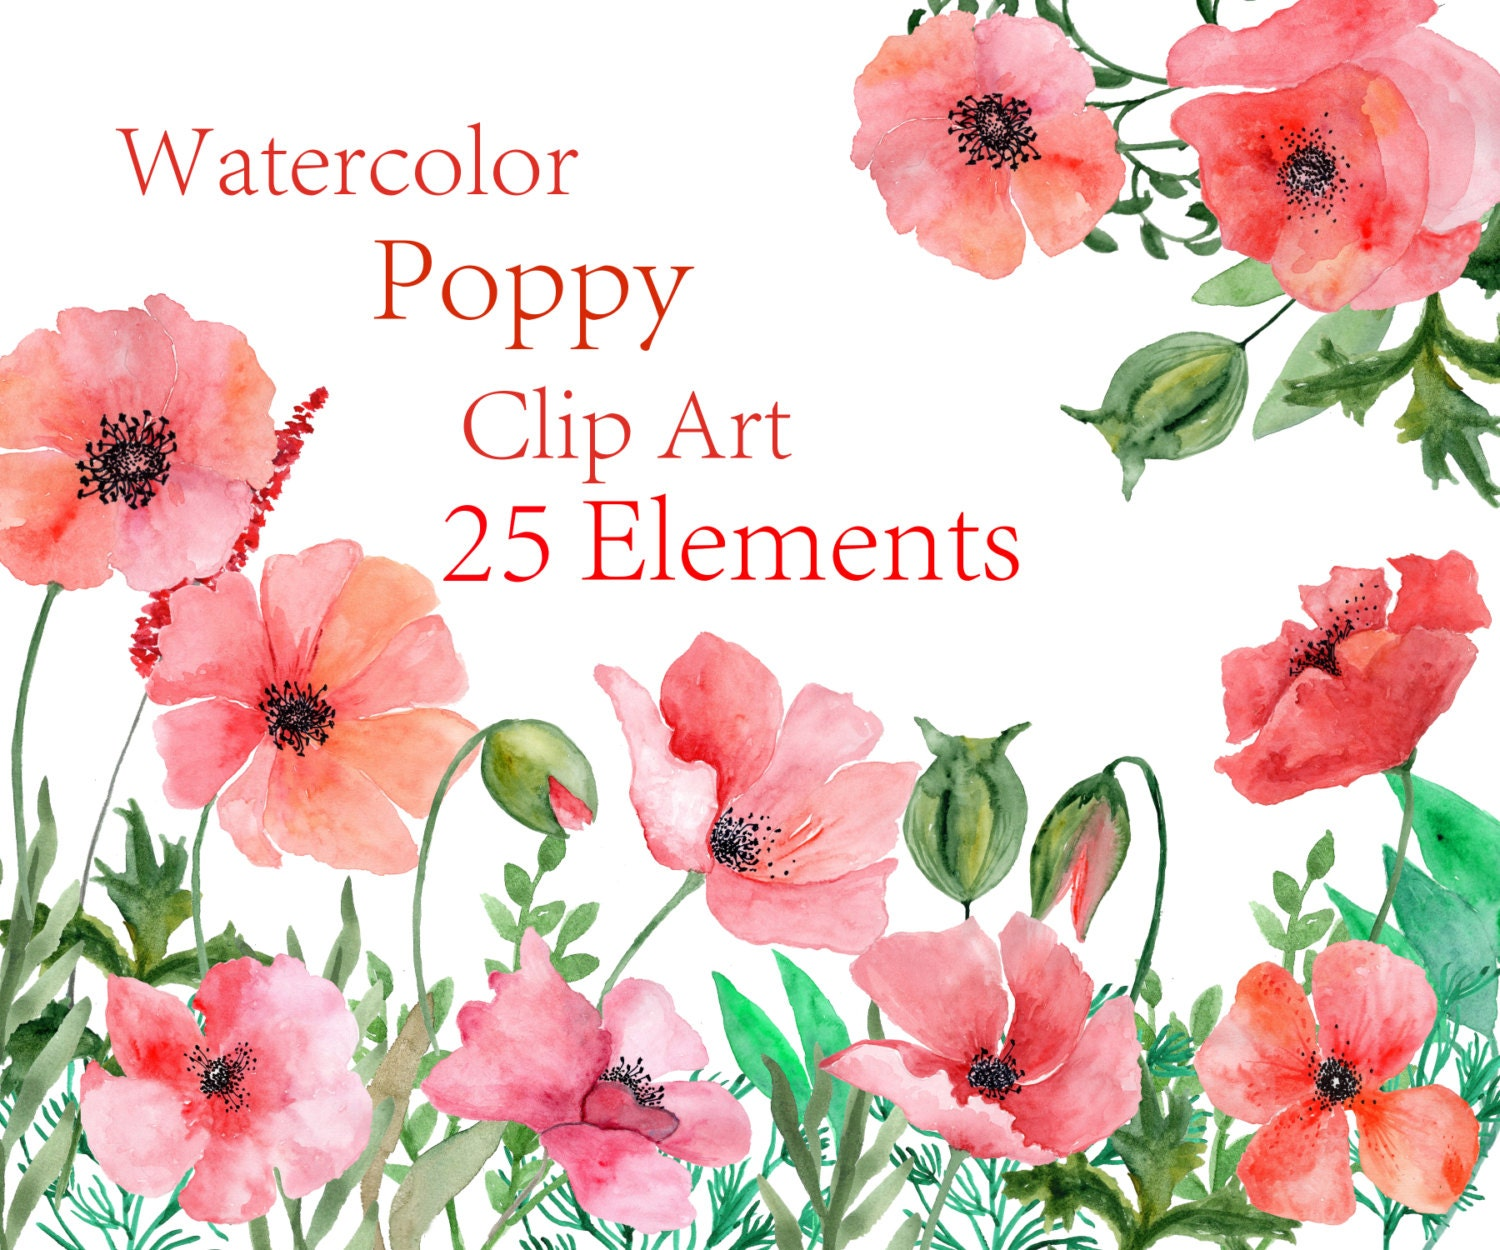 Watercolor Poppy flowers clipart Watercolor Floral clipart Red